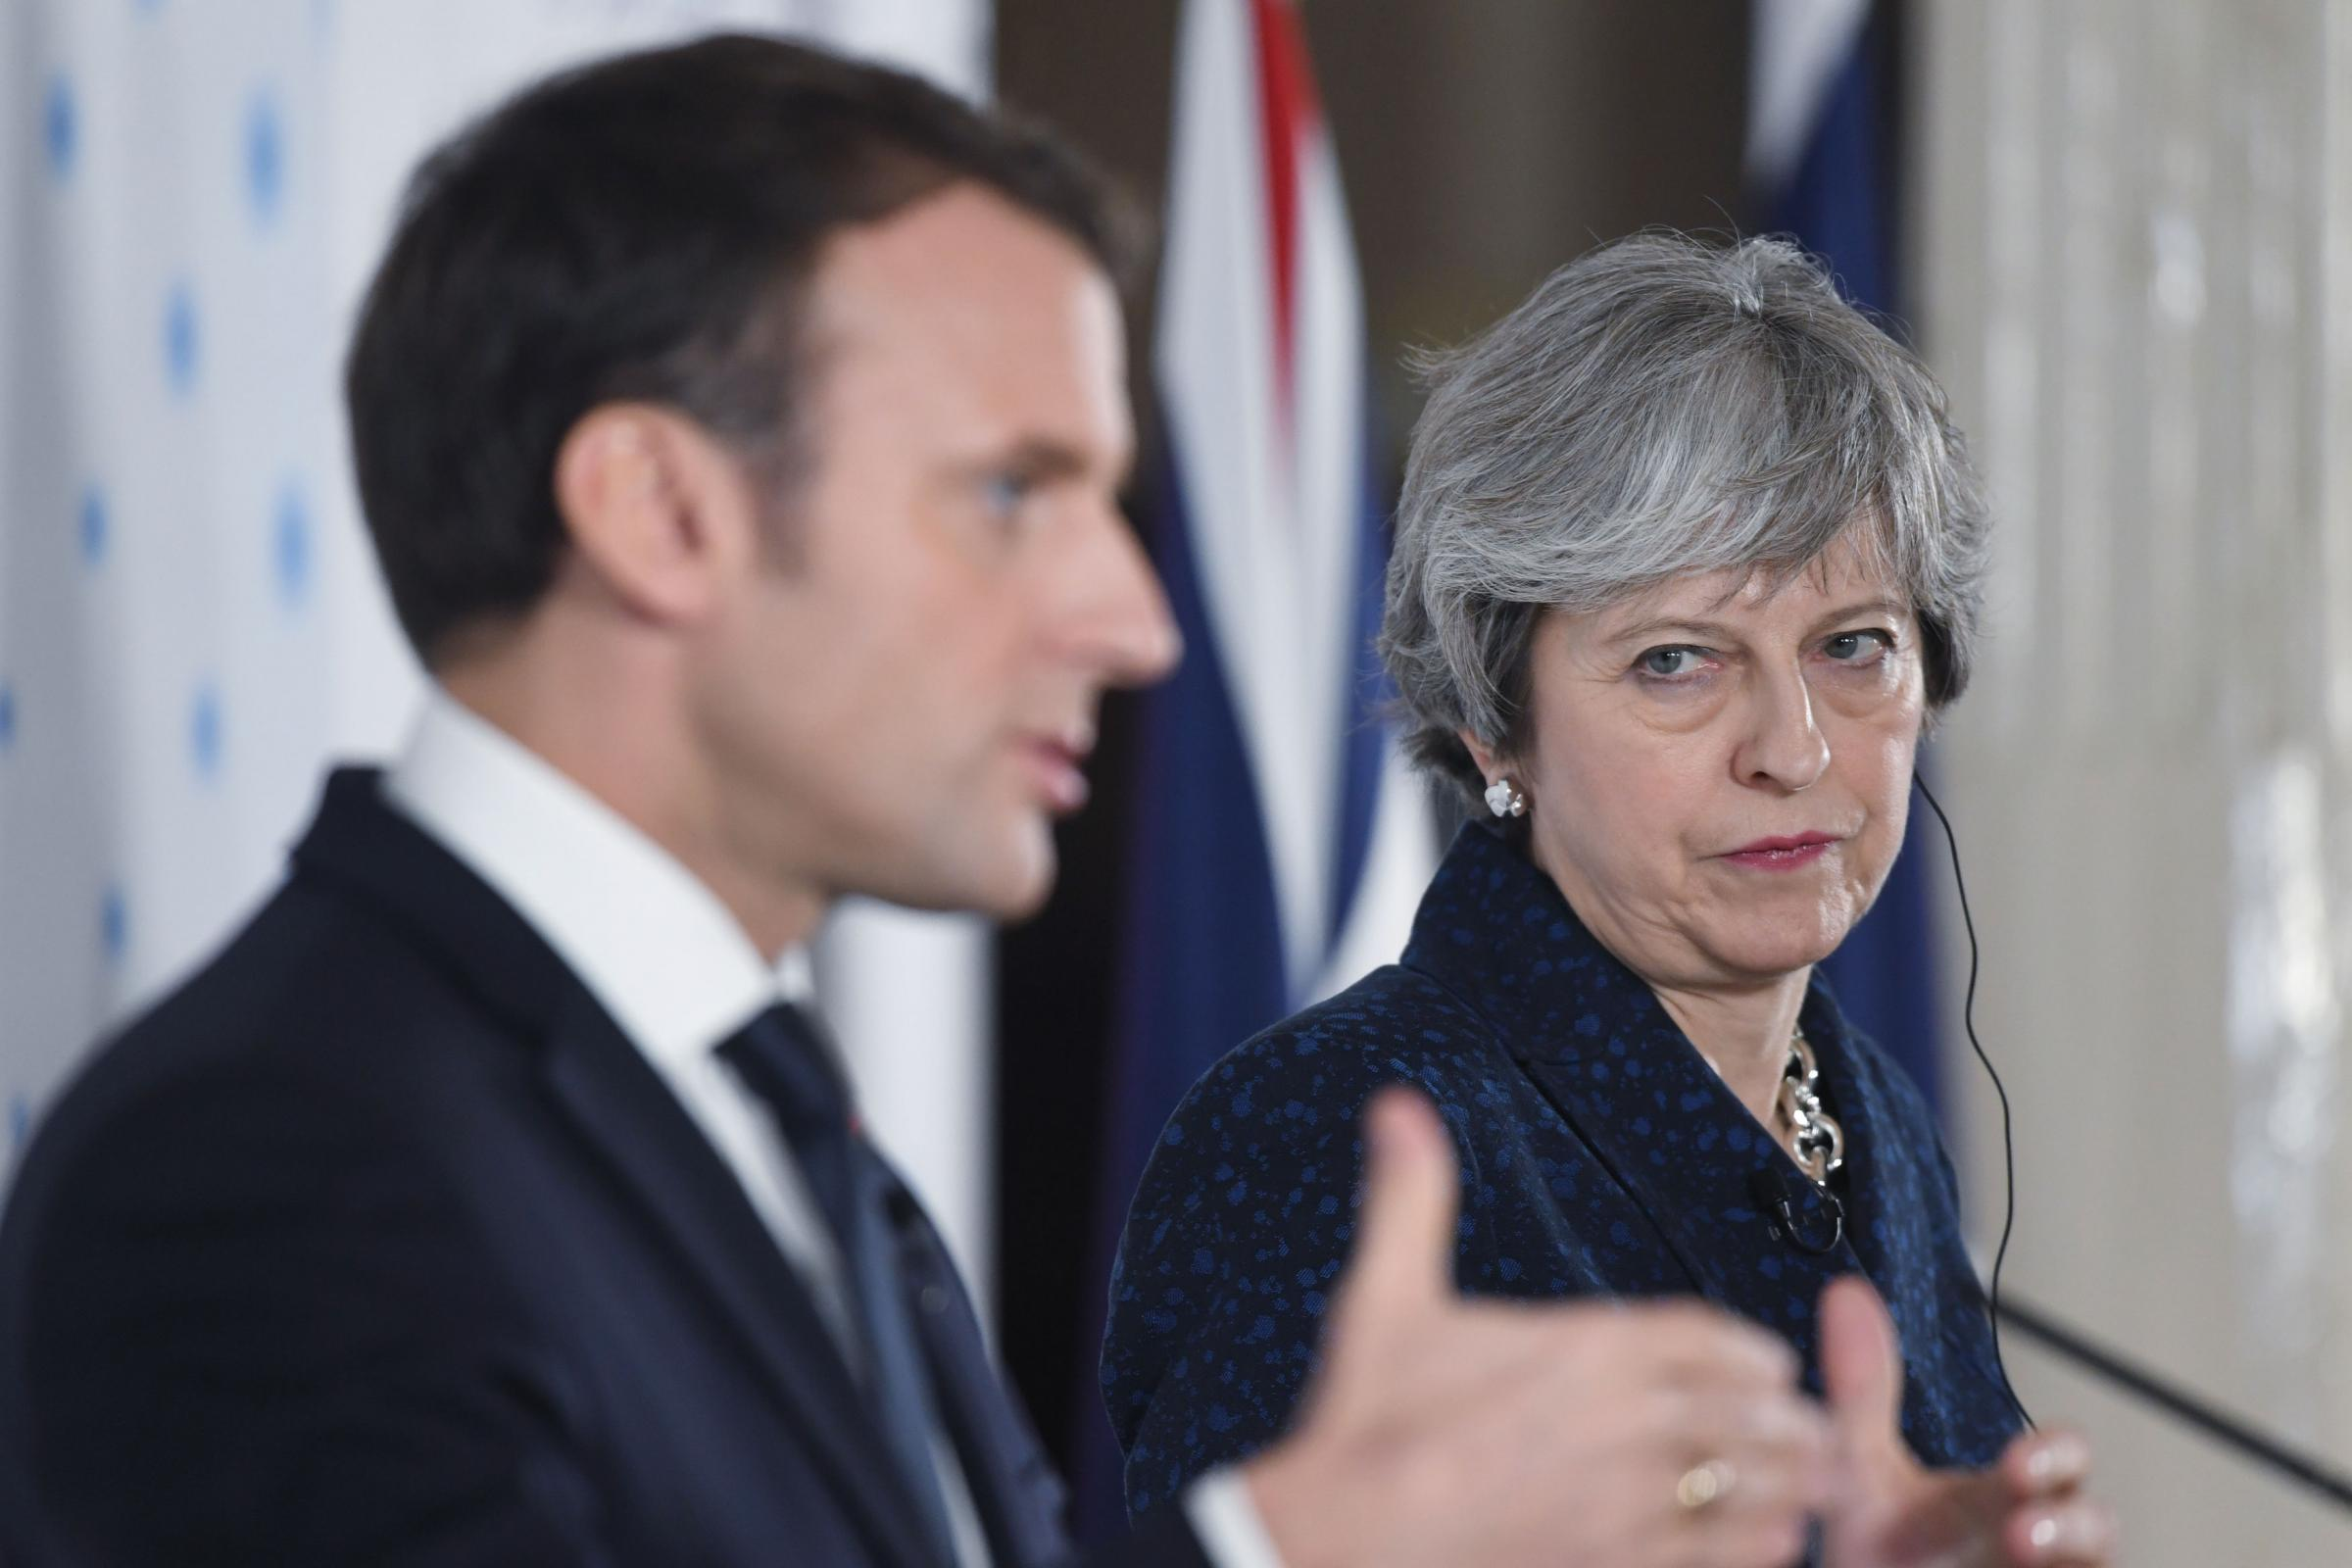 Entente hostile? May warns Macron about breaching 'good faith' agreement over fishing access